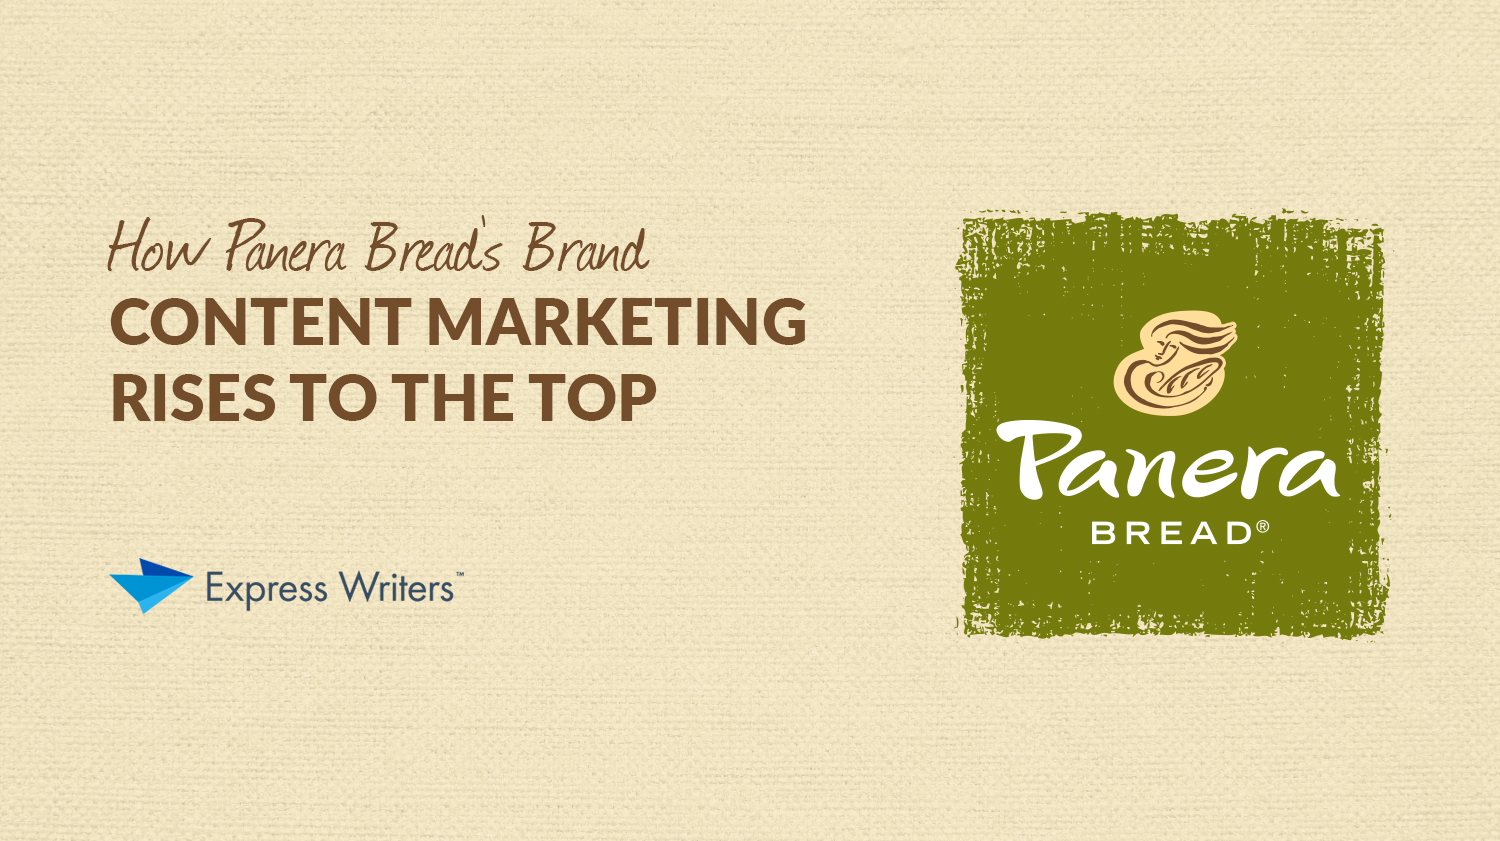 panera bread brand marketing